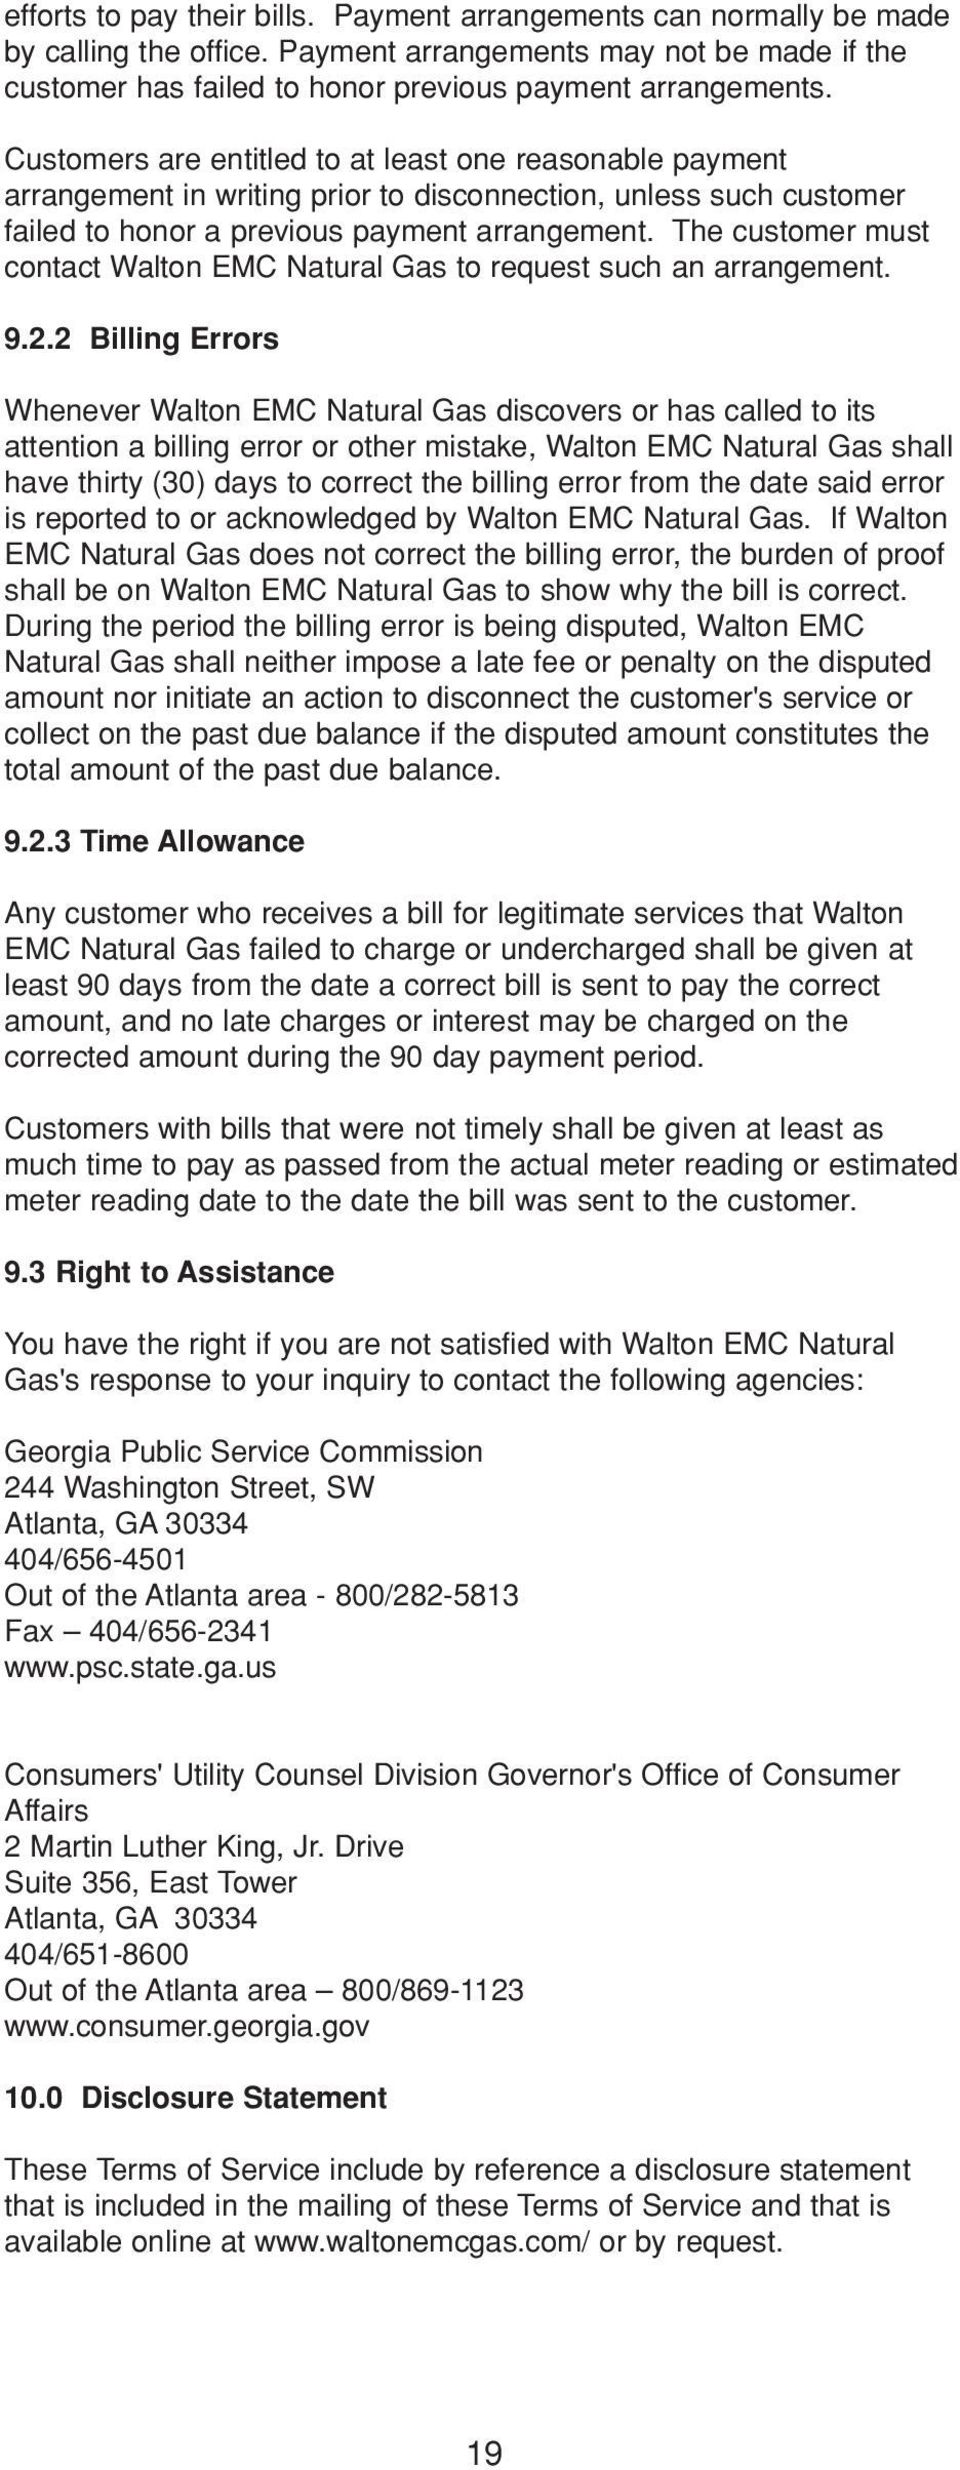 The customer must contact Walton EMC Natural Gas to request such an arrangement. 9.2.